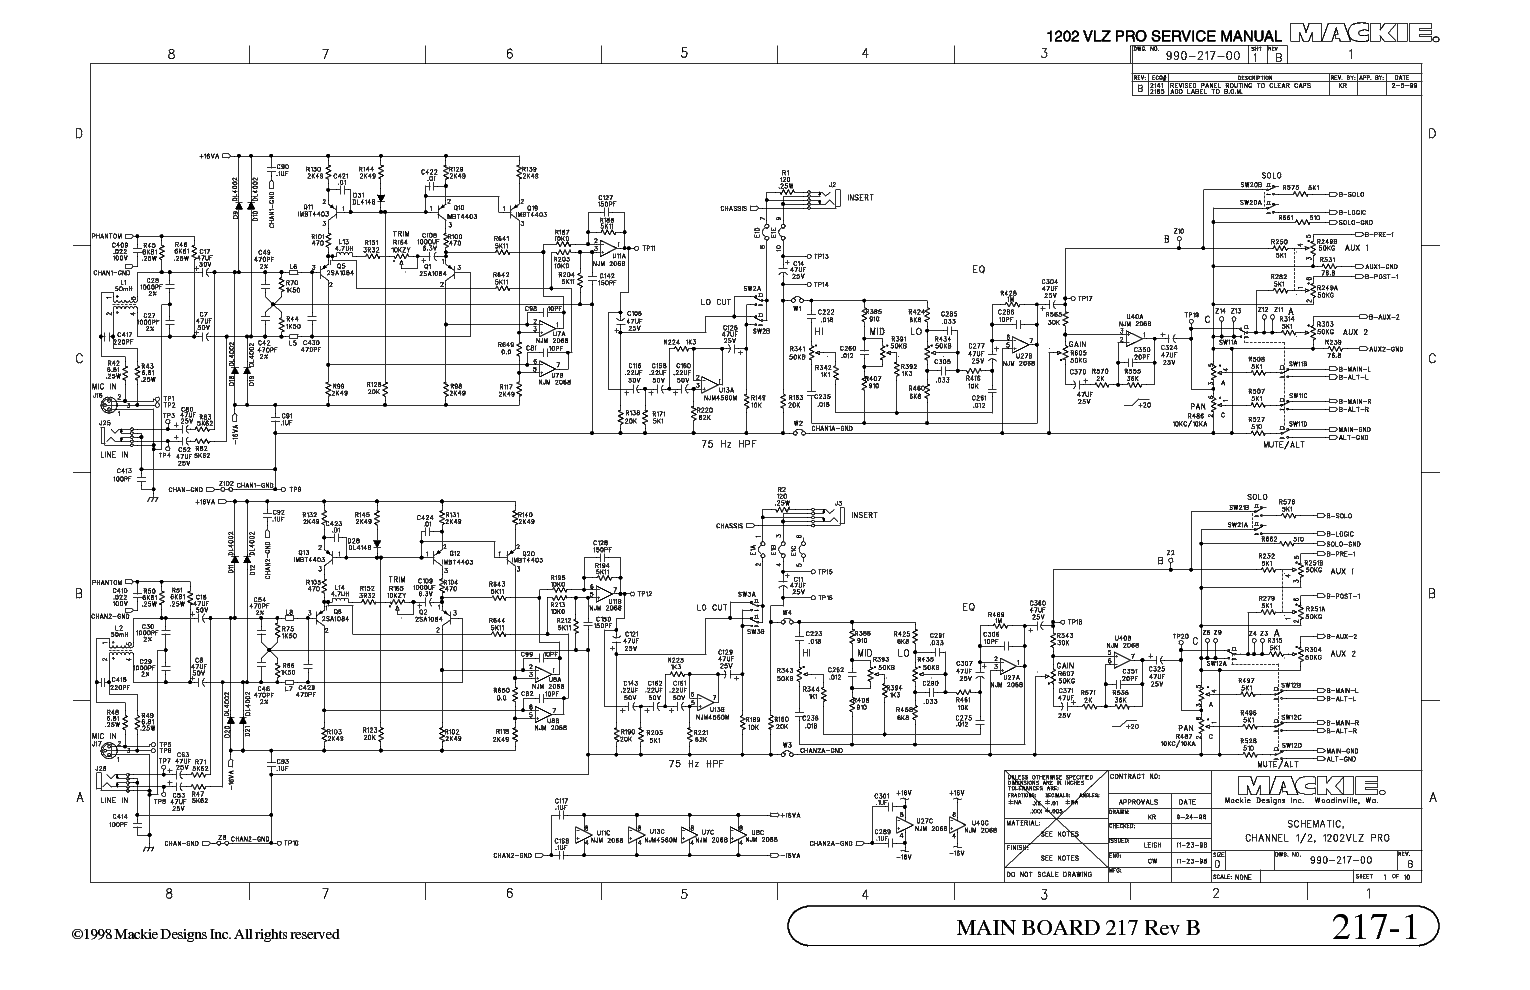 hight resolution of mackie 1202 vlz pro schematic diagram service manual download free audio schematic diagram